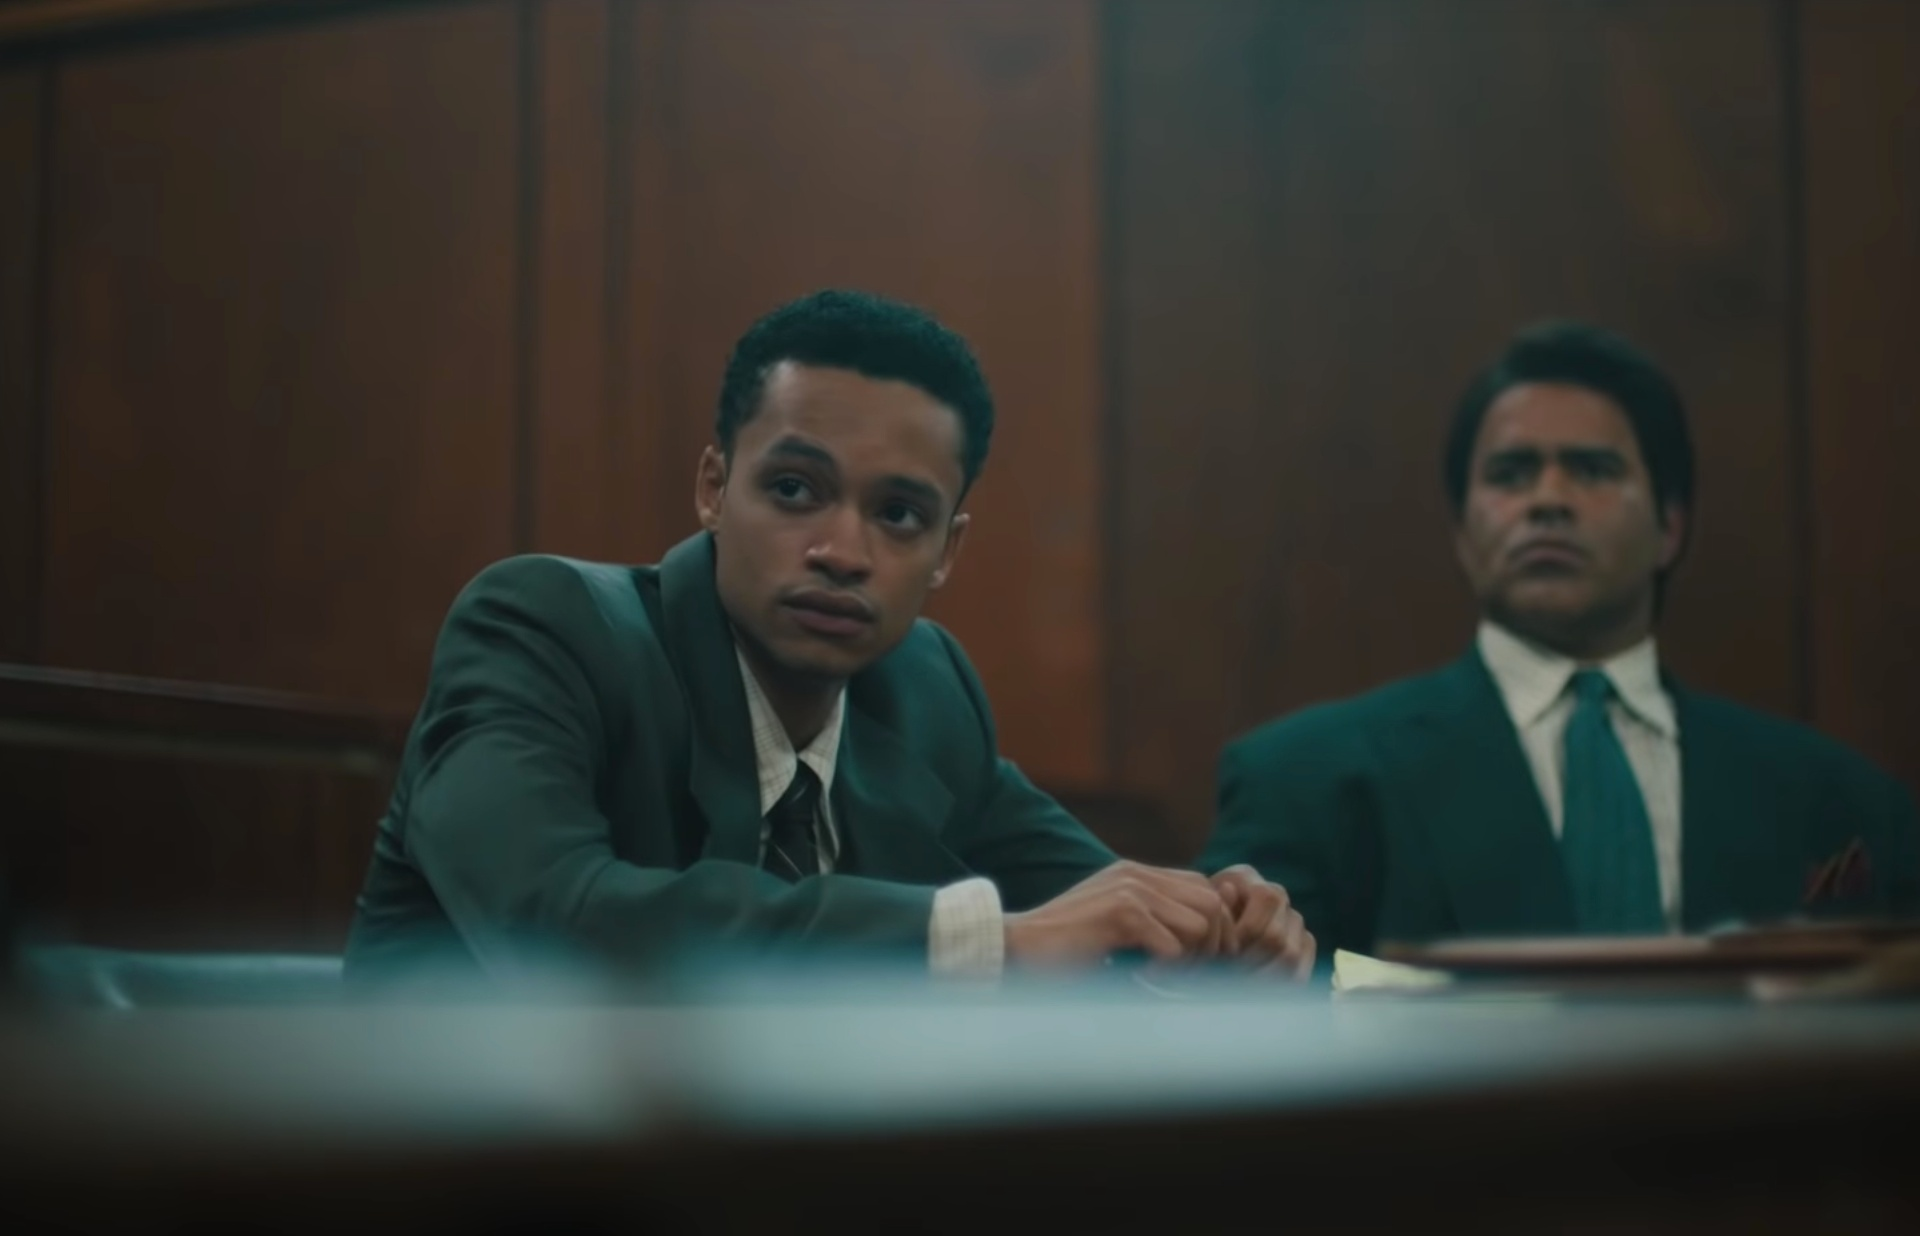 This Is What We Can Learn From Netflix's 'When They See Us'